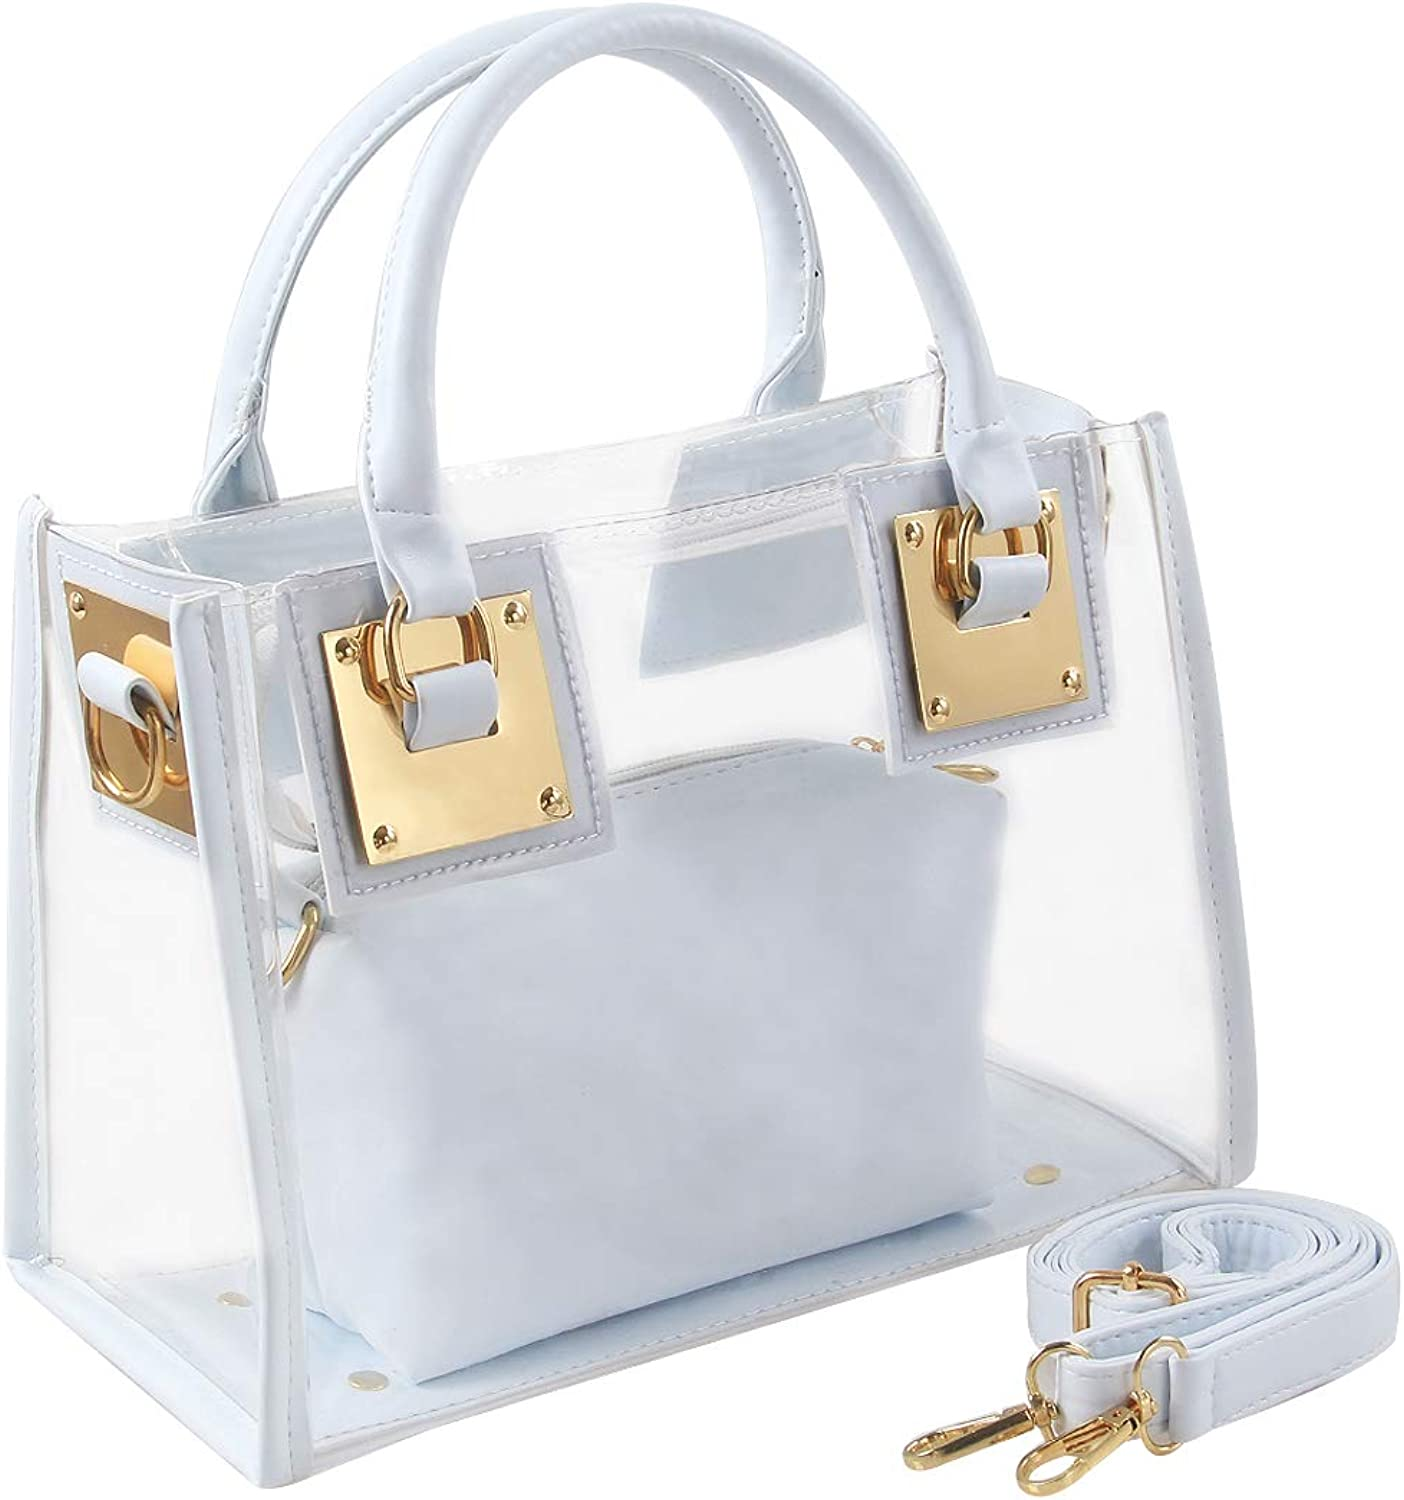 YellowPin Women's 2in1 Transparent Zip clousre crossbody shoulder bag with cluth